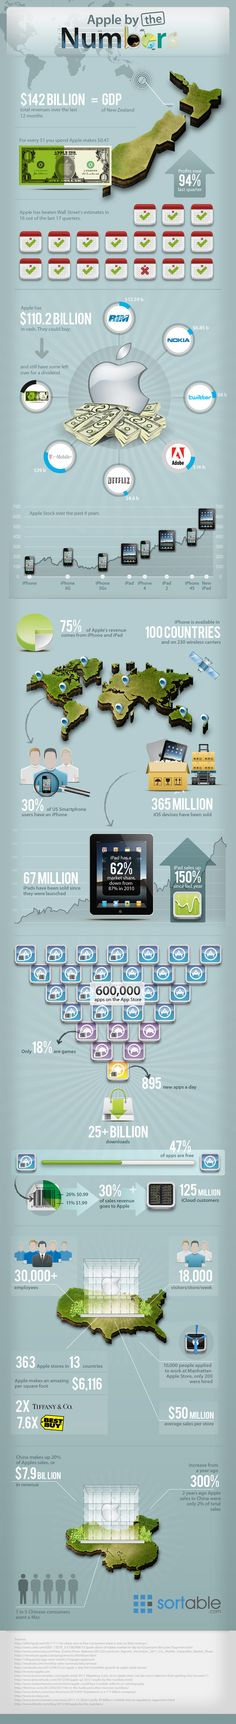 Apple by the Numbers